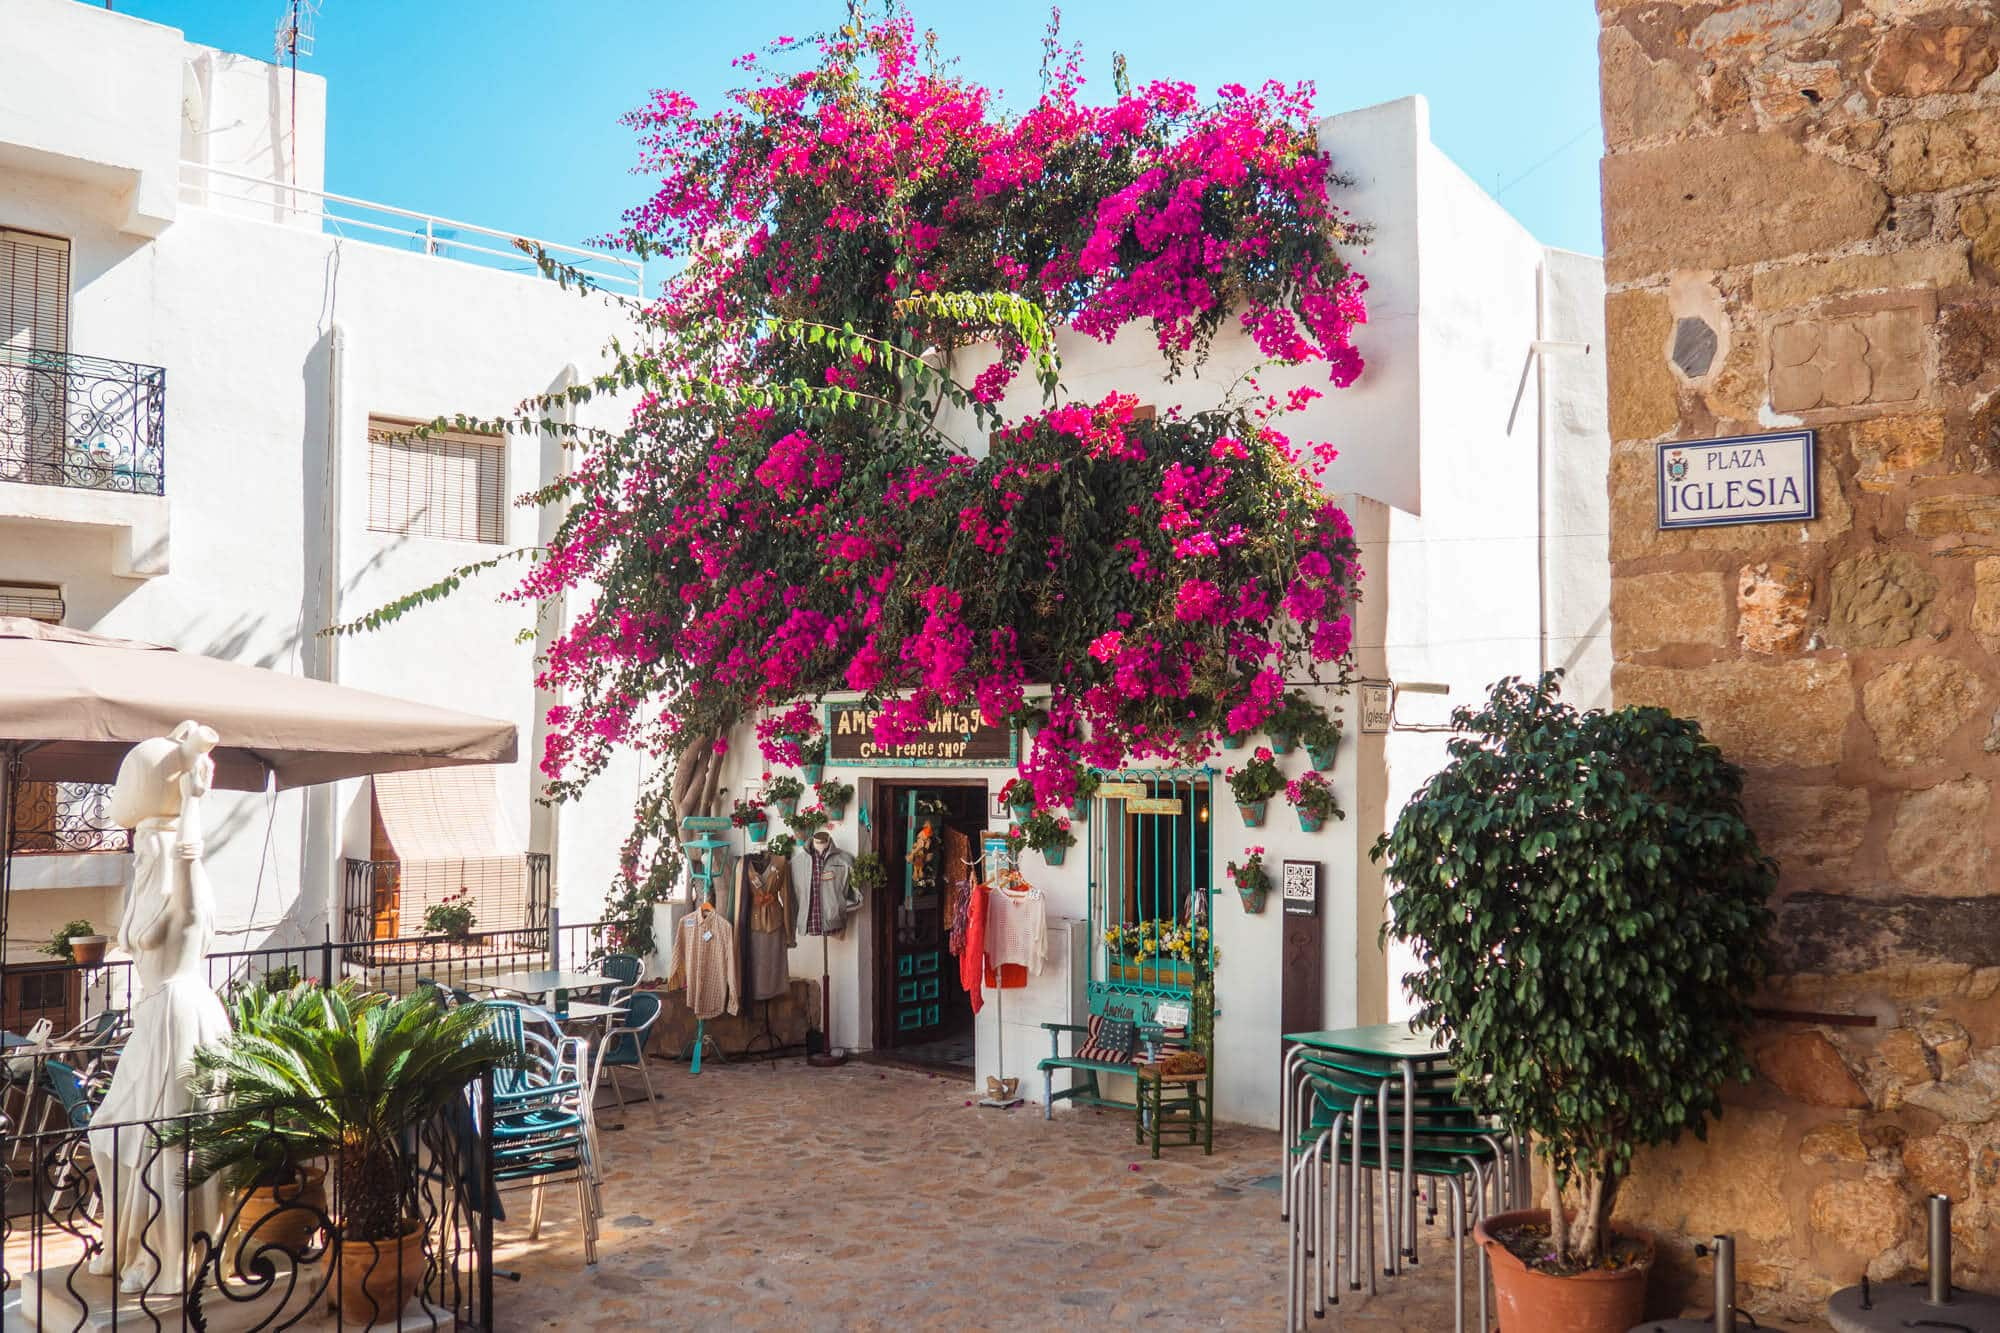 View of a beautiful white house covered in pink Bougainvillea and the Statue of Mojaquera in Plaza Iglesia in Mojacár Pueblo Spain